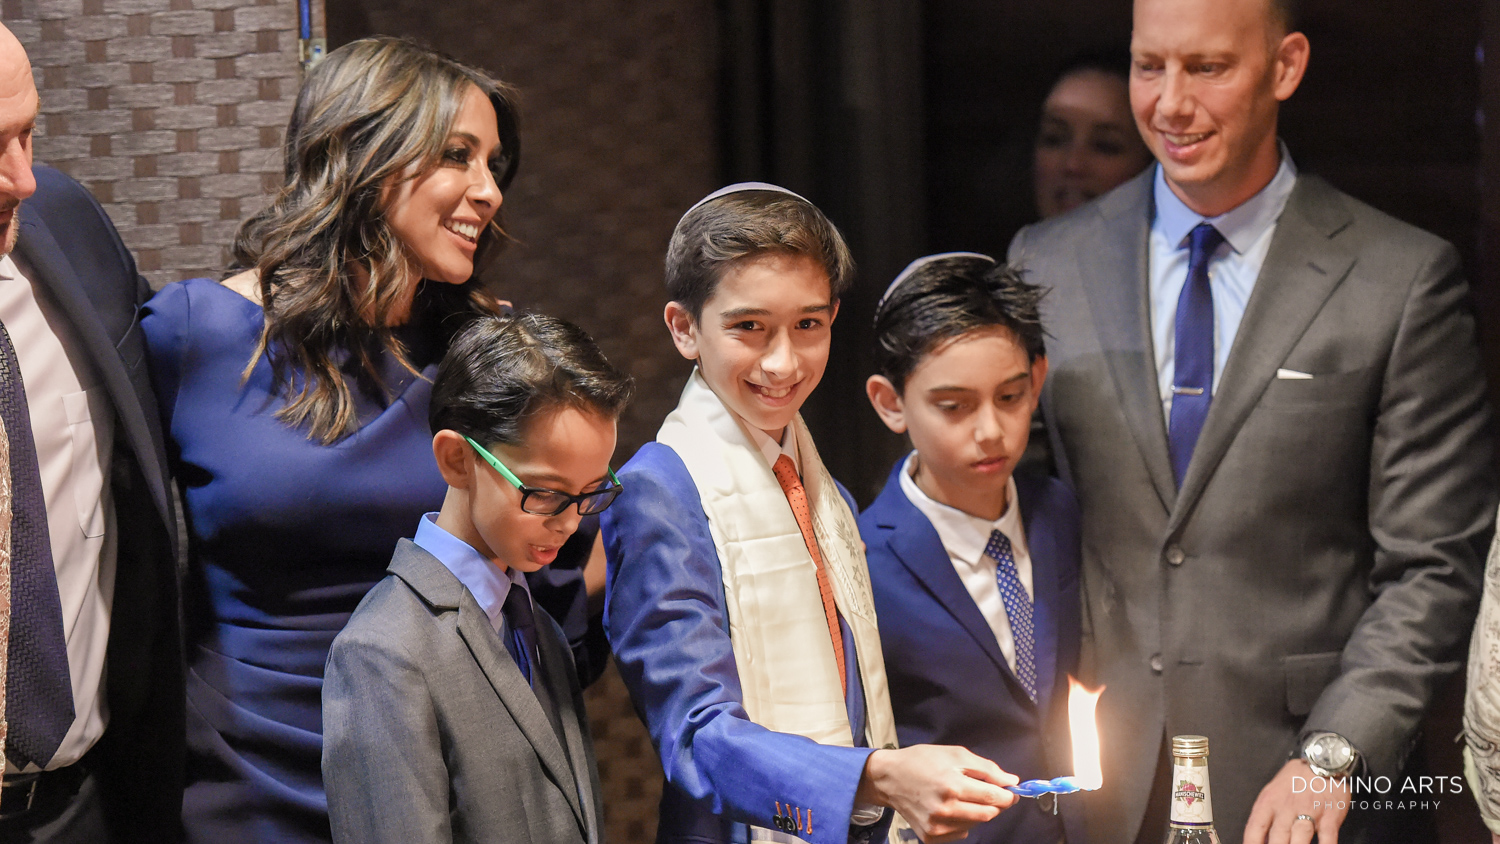 Candle lighting traditional Mitzvah Service at Delaire Country Club